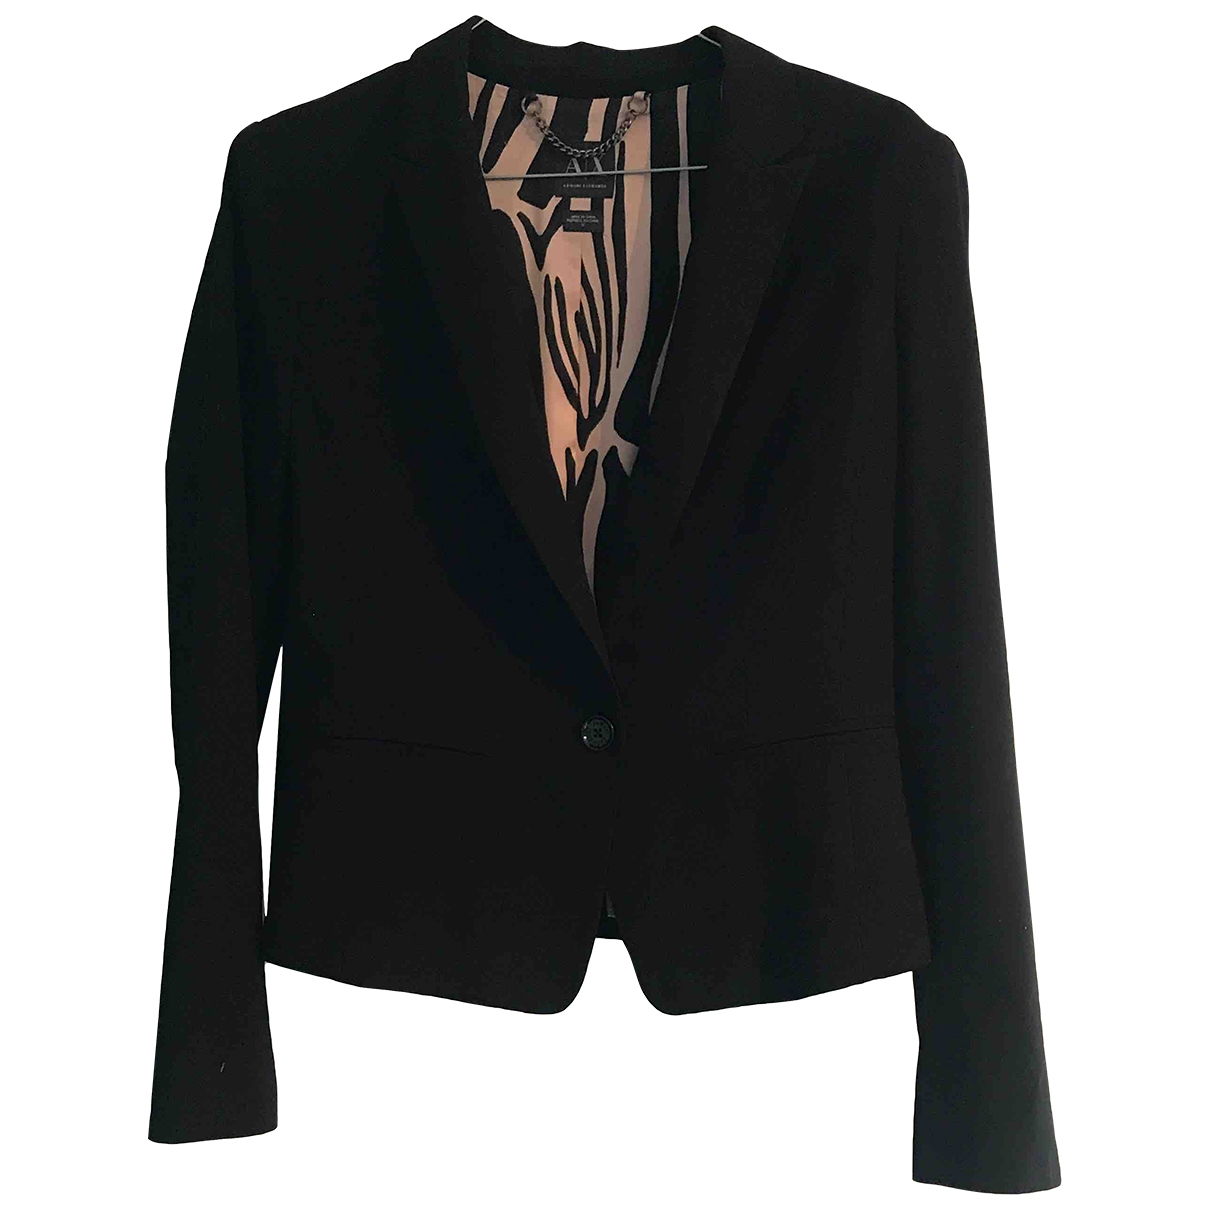 Emporio Armani \N Black Wool jacket for Women 10 UK